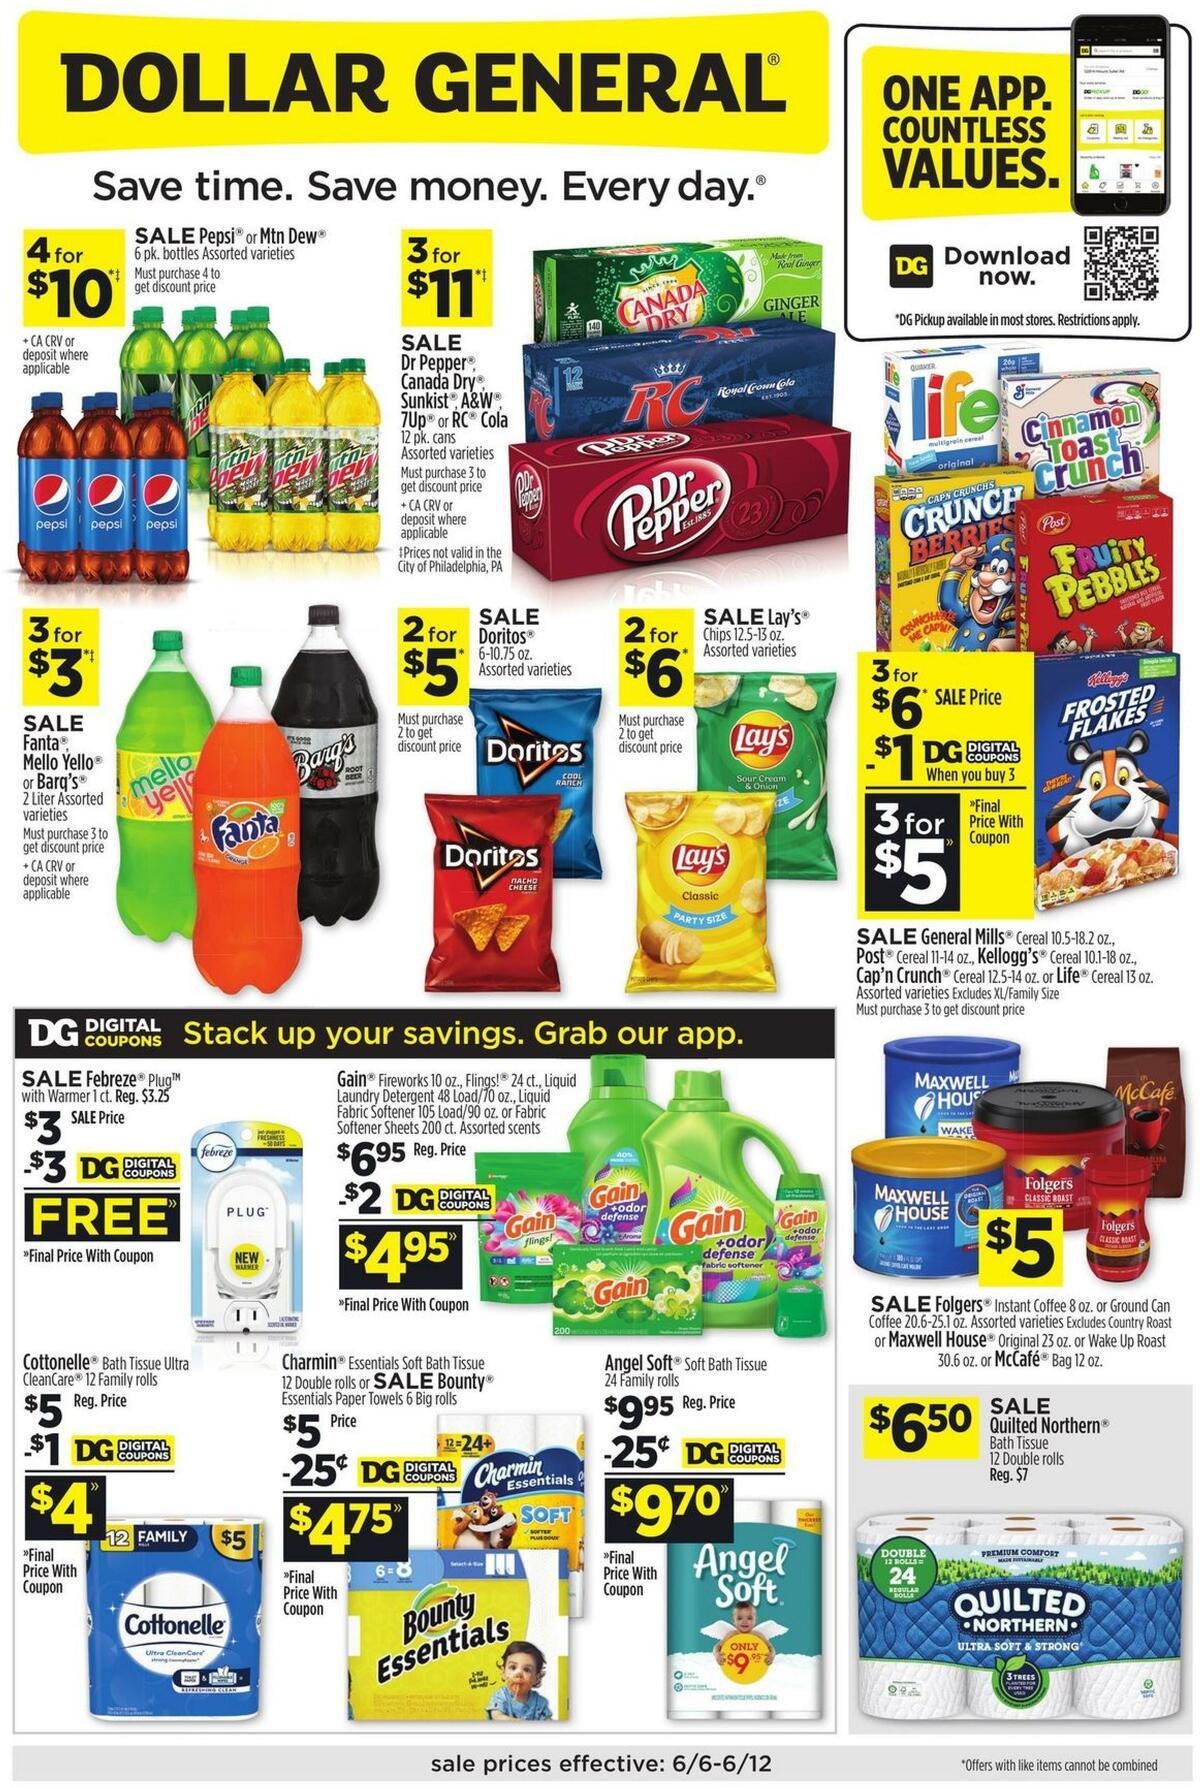 Dollar General Weekly Ad from June 6